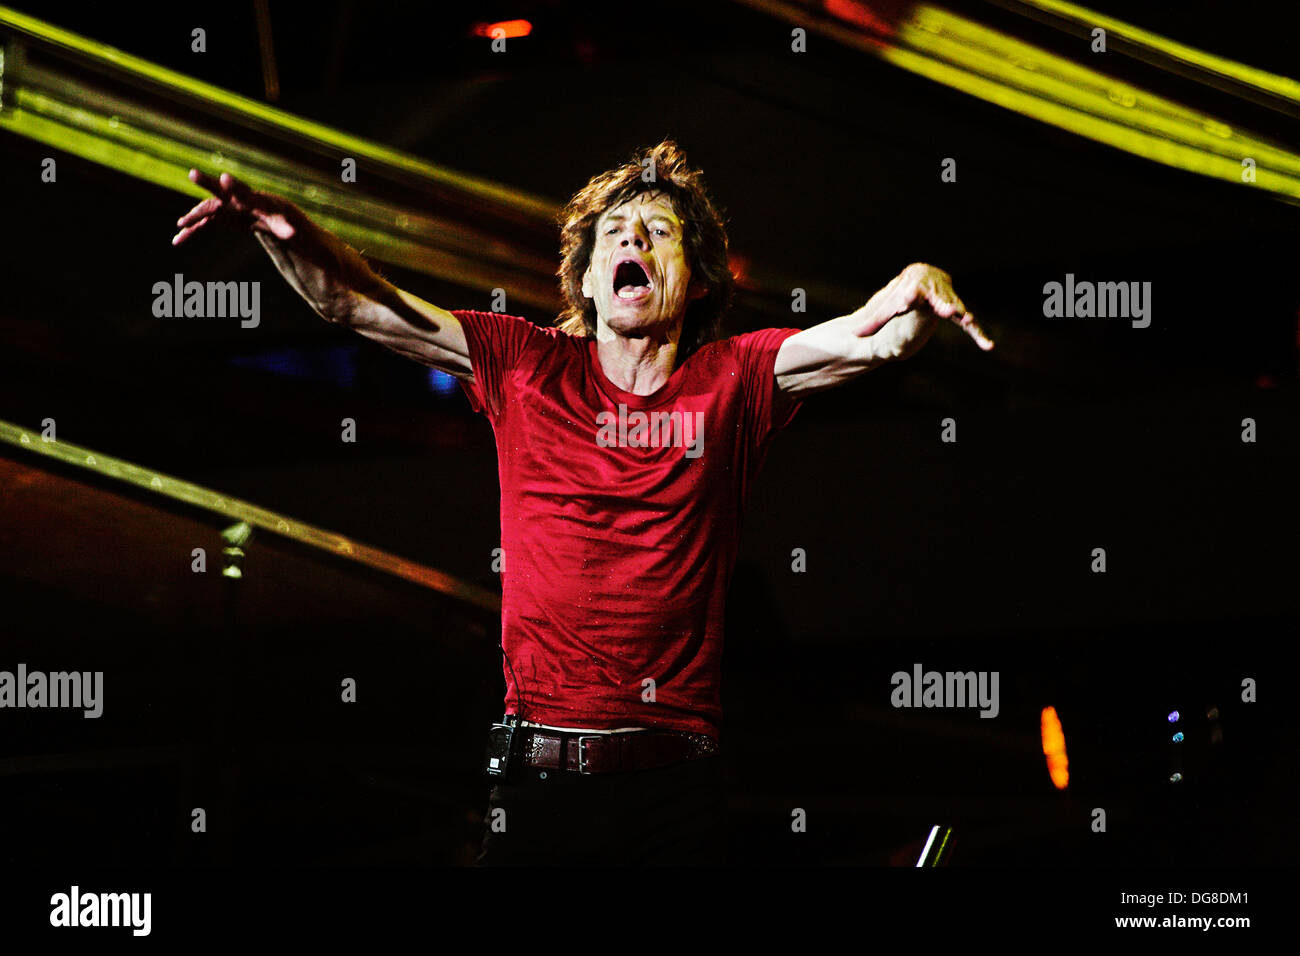 Rolling Stones, Mick Jagger on stage looking out into audience at Stade du France - Stock Image